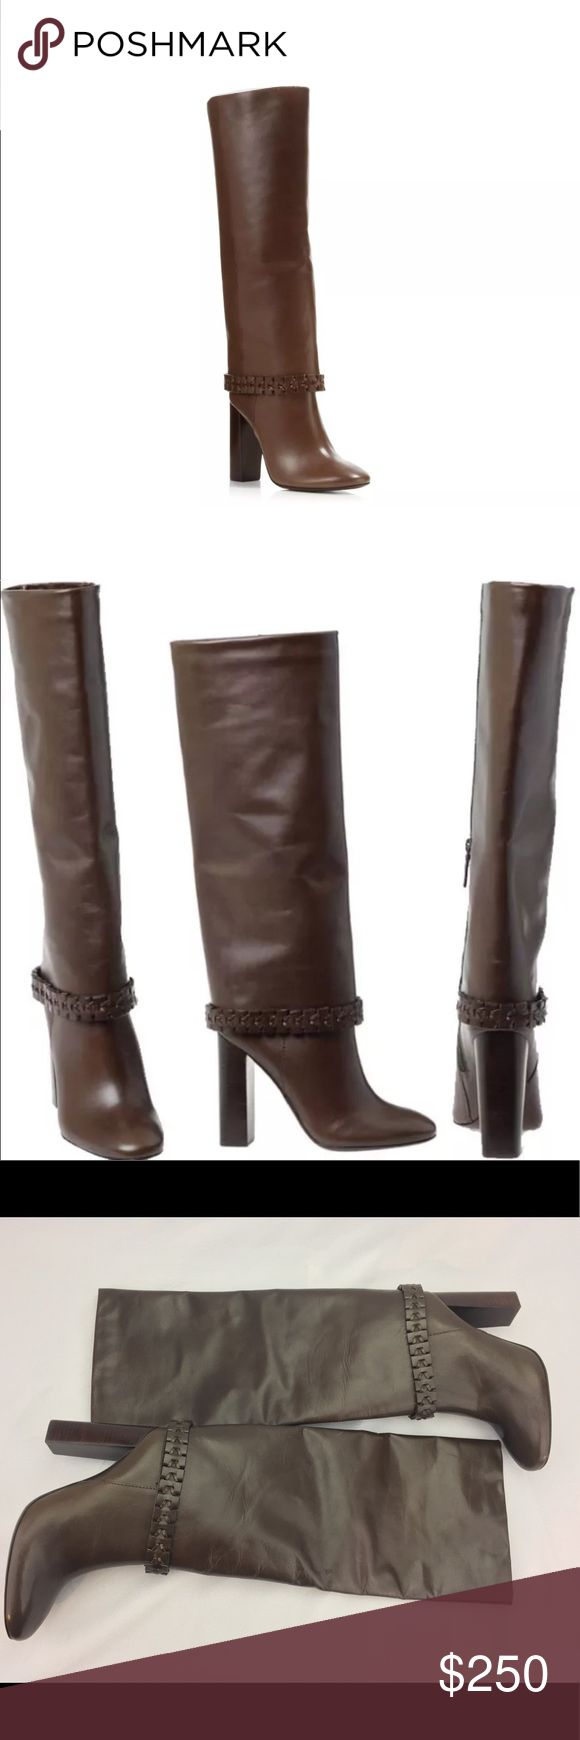 """Tory Burch Sarava Tall Leather Brown Boots 8 NEW New without box - store display model. May show signs of being """"tried"""" on in store - minor scuff, shelf wear, or sticker residue. PLEASE TAKE A LOOK AT ALL PHOTOS.   AUTHENTIC TORY BURCH """"SARAVA"""" 110MM BOOT  COLOR: GLABRA NUT   SIZE: 8 WOMEN'S  GALLEON LEATHER Tory Burch Shoes Winter & Rain Boots"""